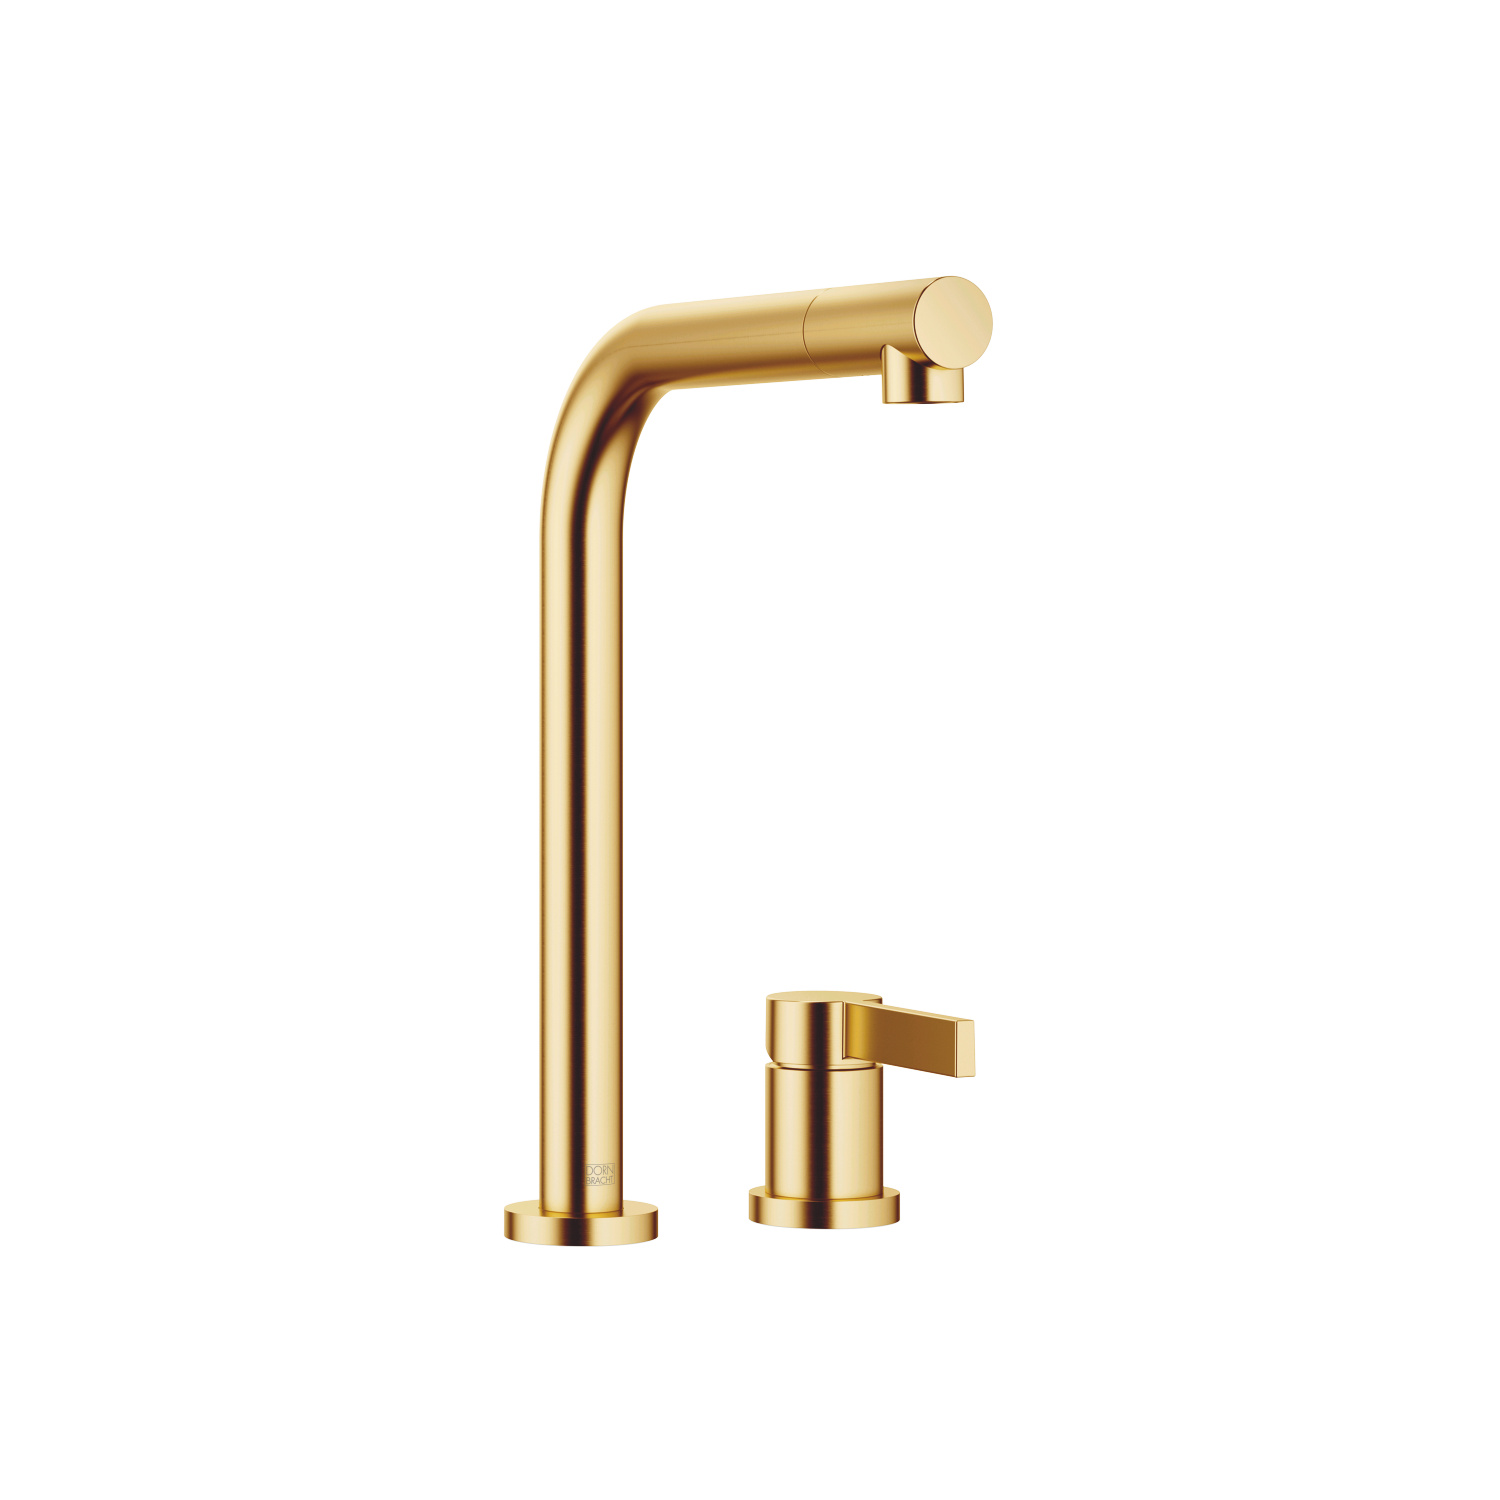 Two-hole mixer with individual rosettes - brushed Durabrass